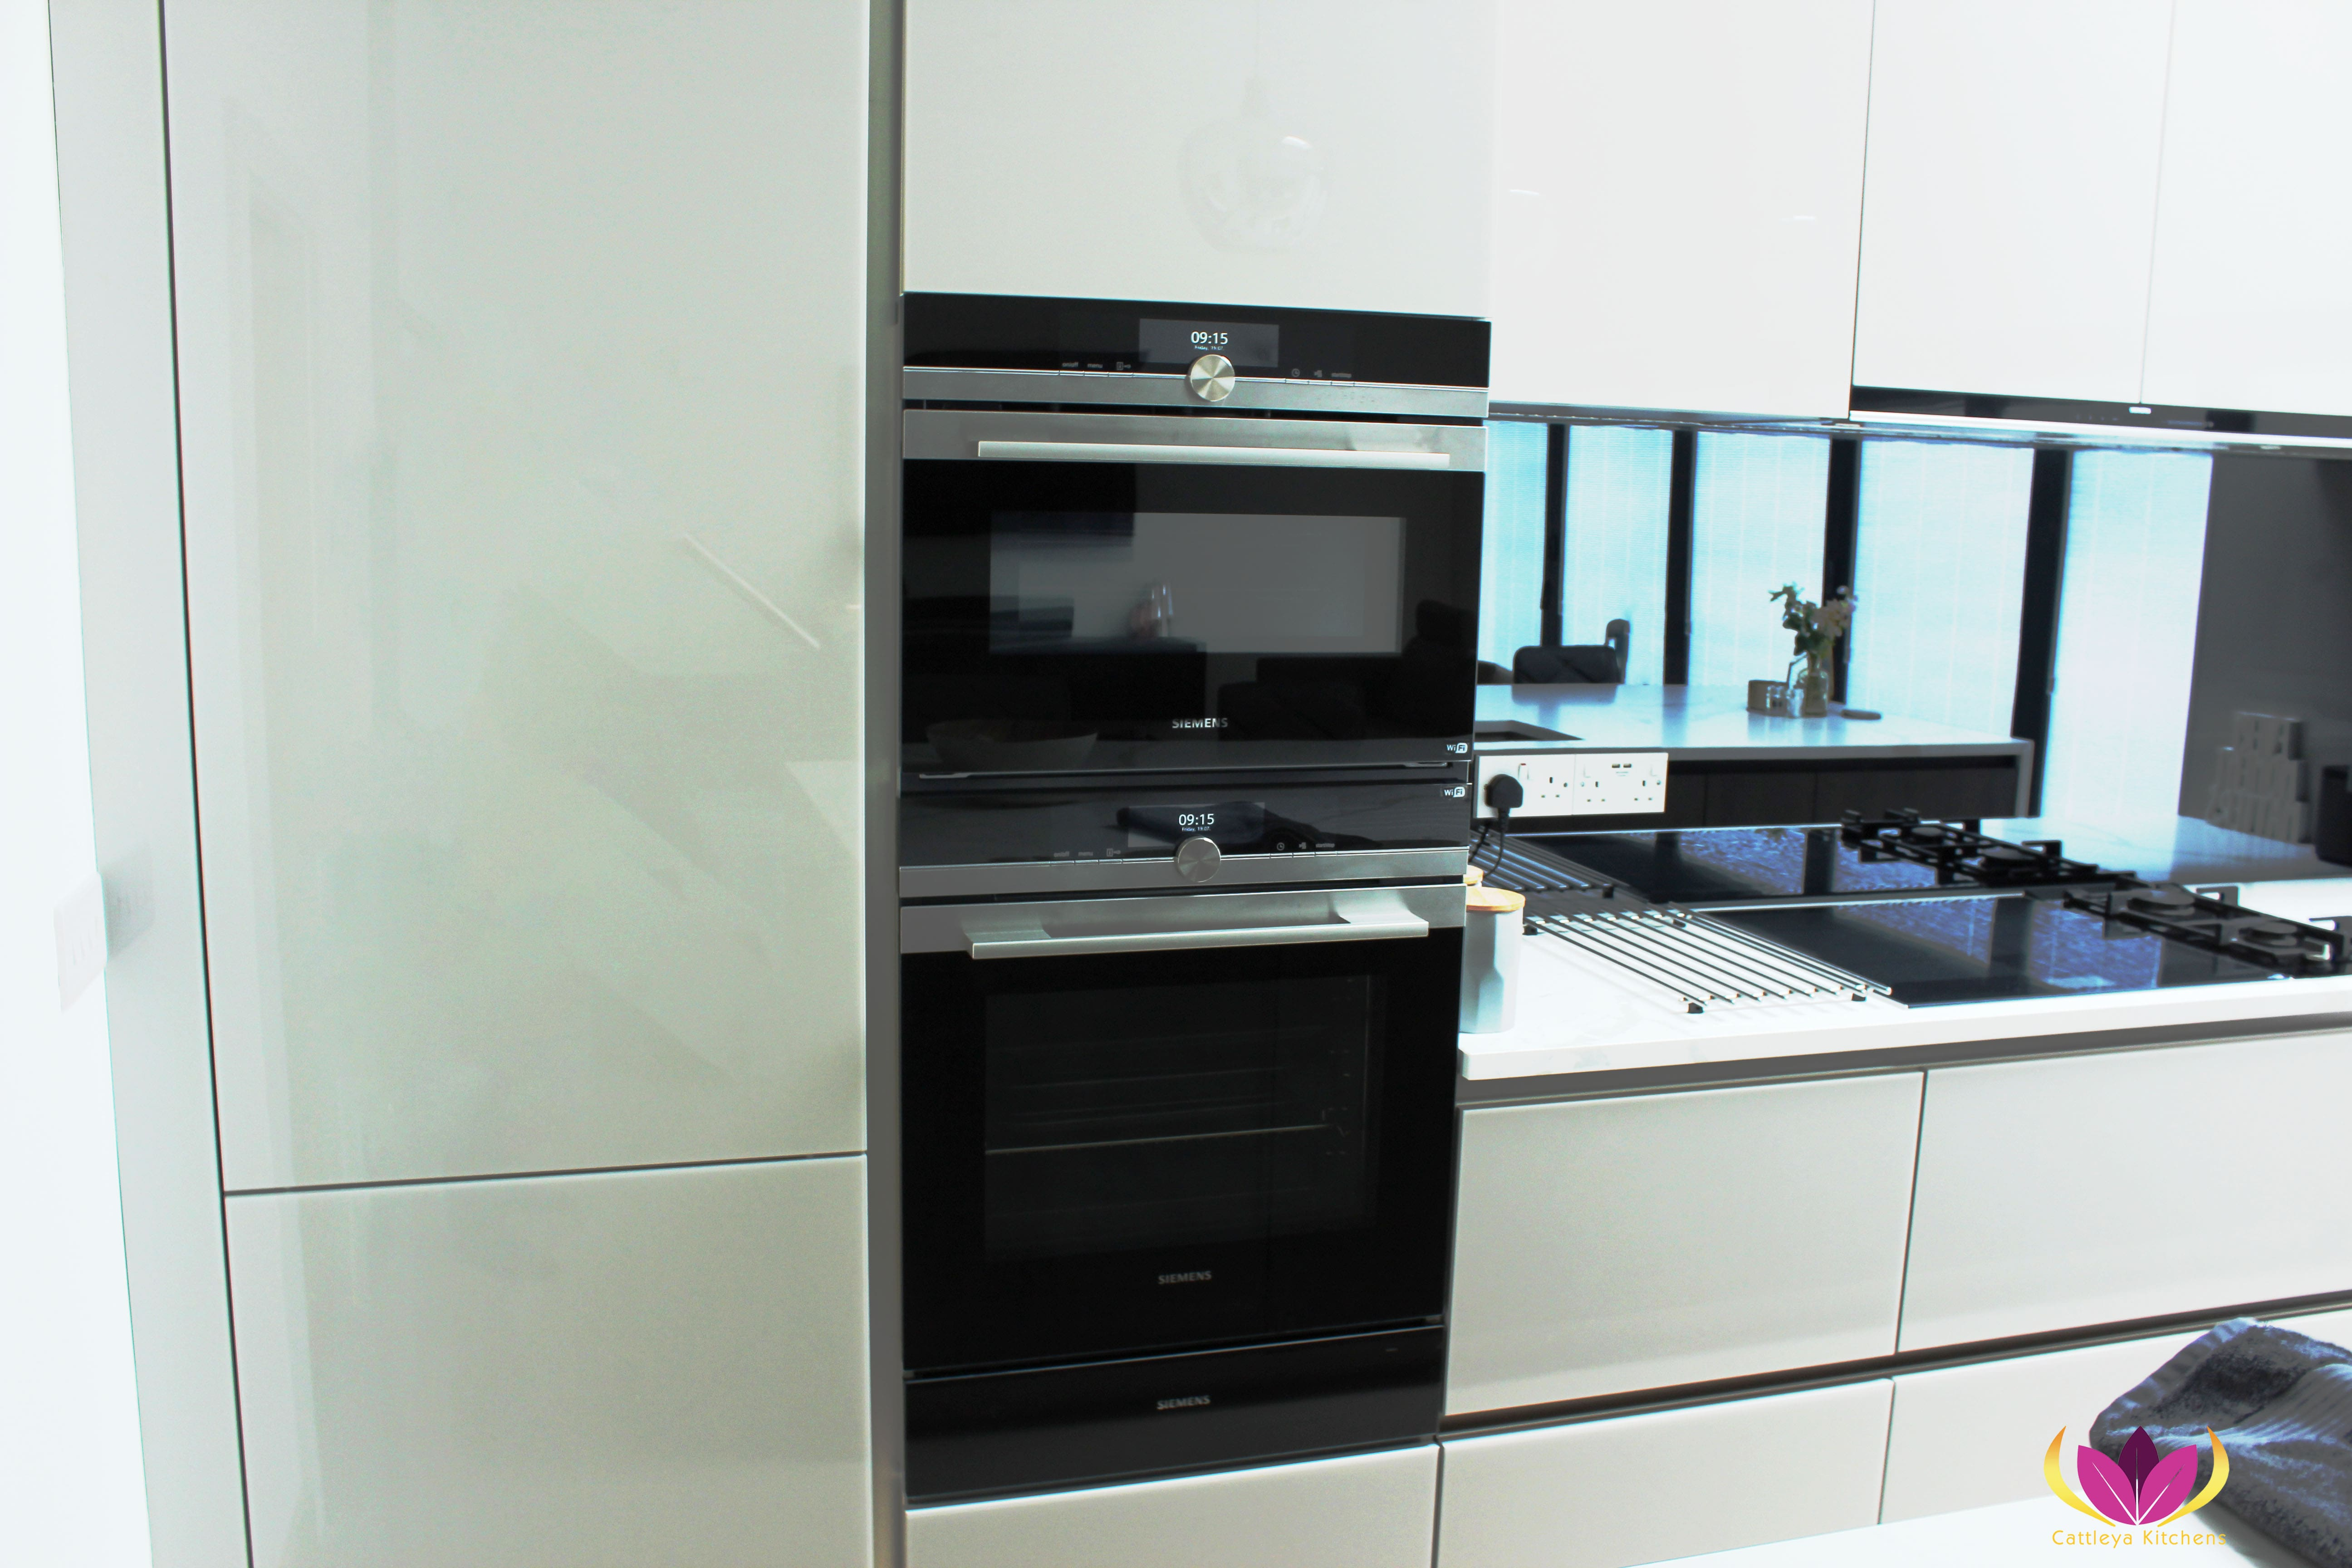 Siemens innovative ovens - Greenford Finished Kitchen Project